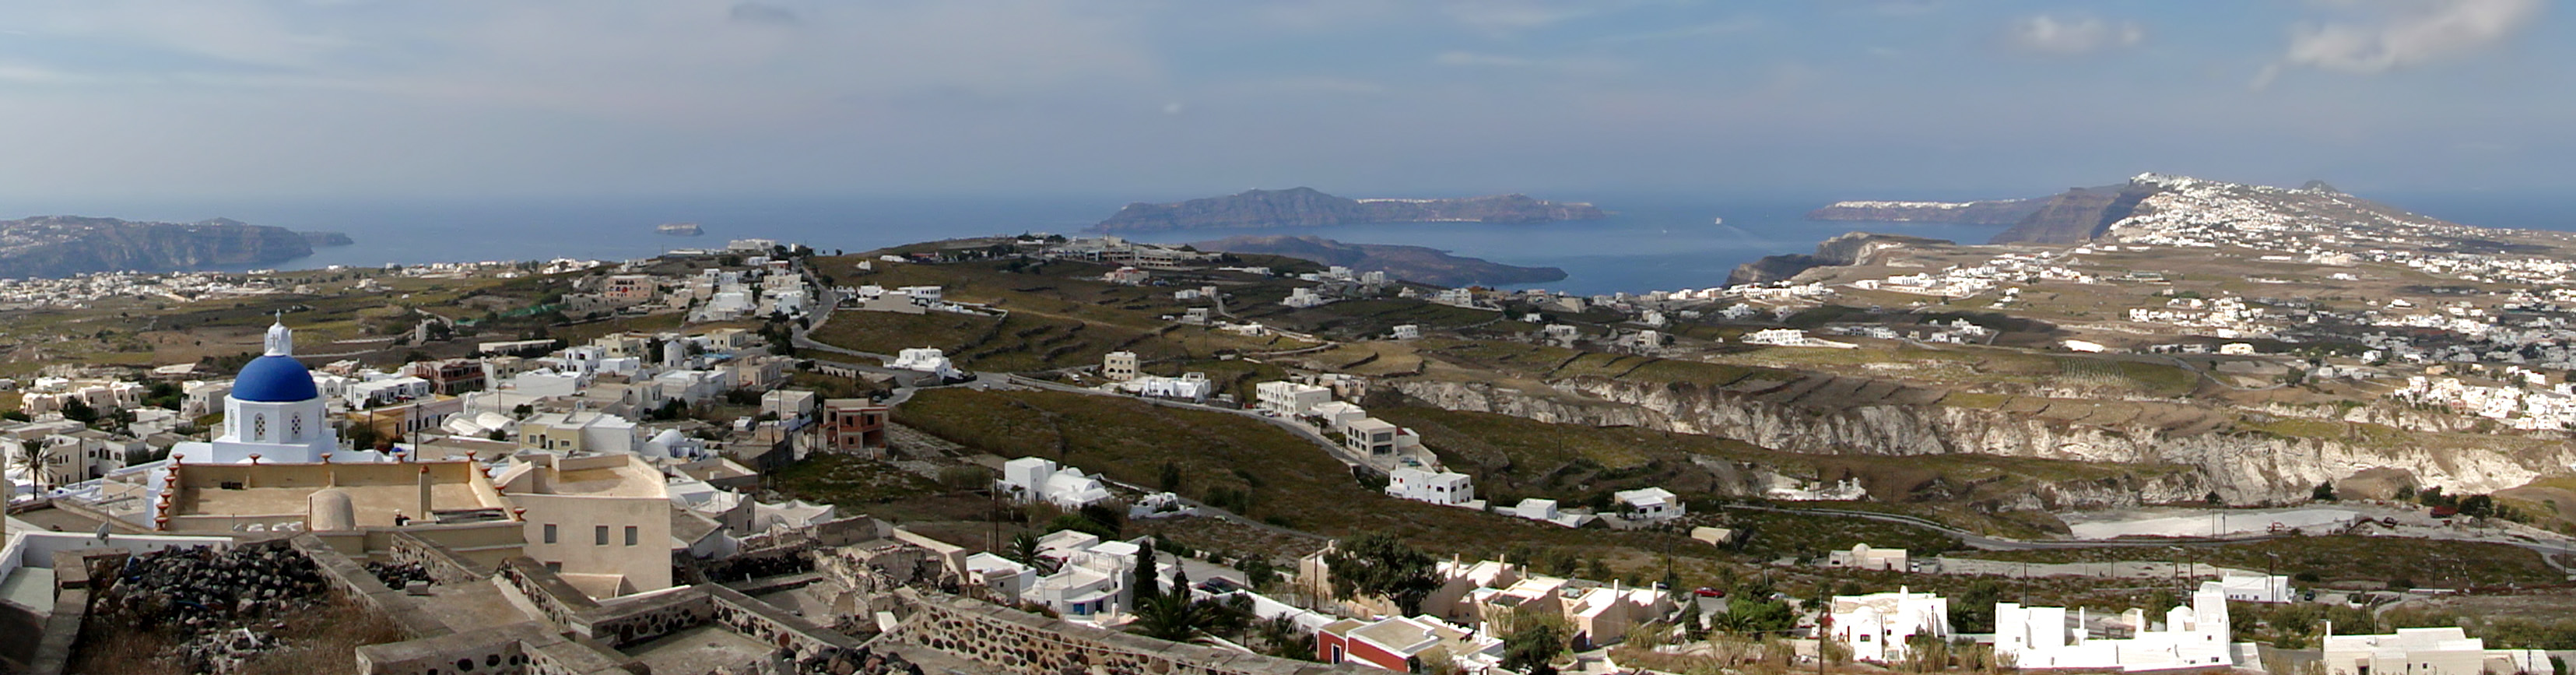 File:View of Santorini from Pyrgos.jpg - Wikimedia Commons